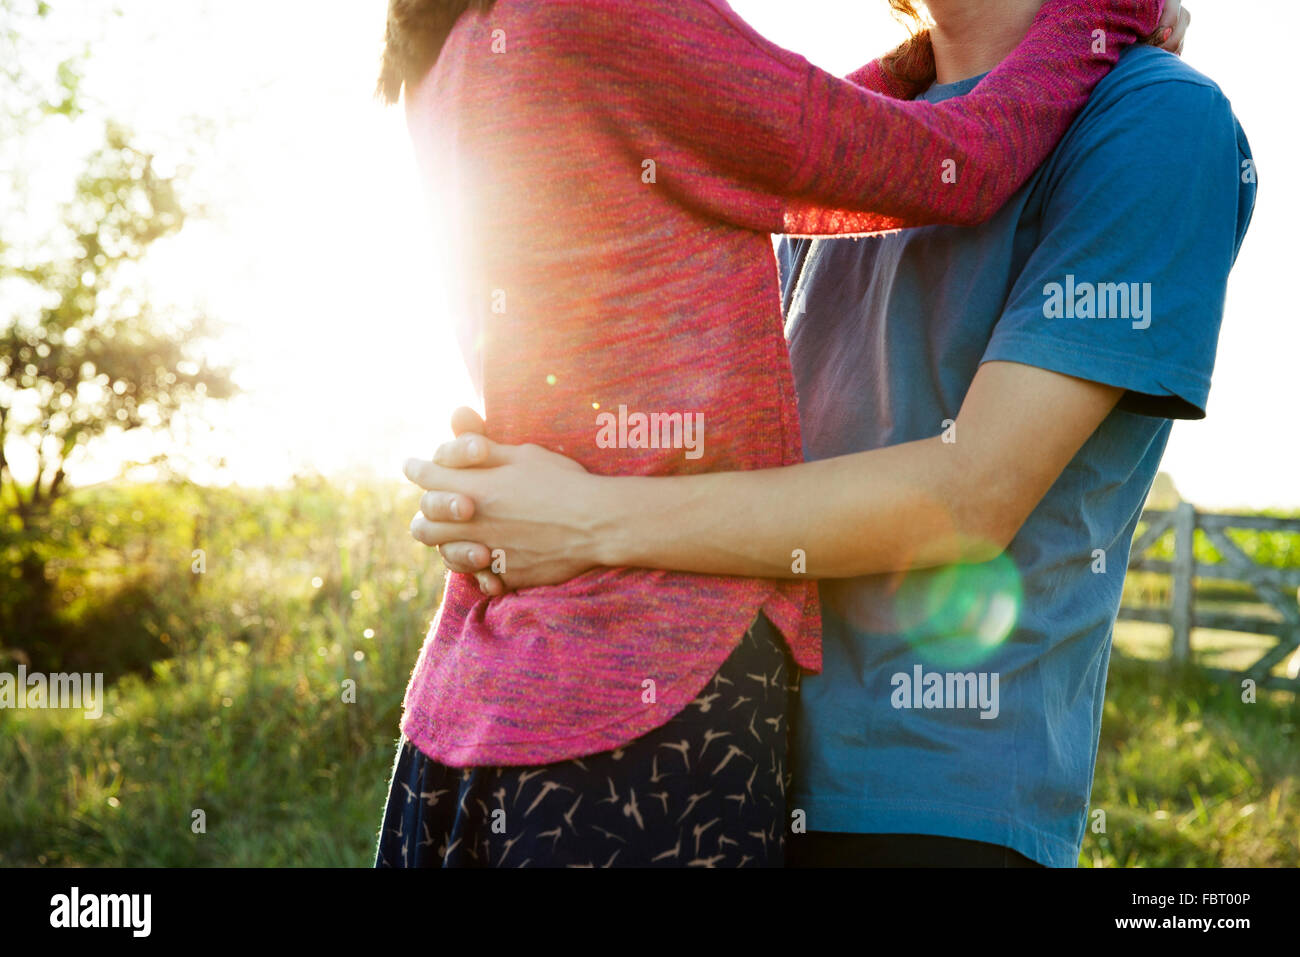 Couple embracing - Stock Image